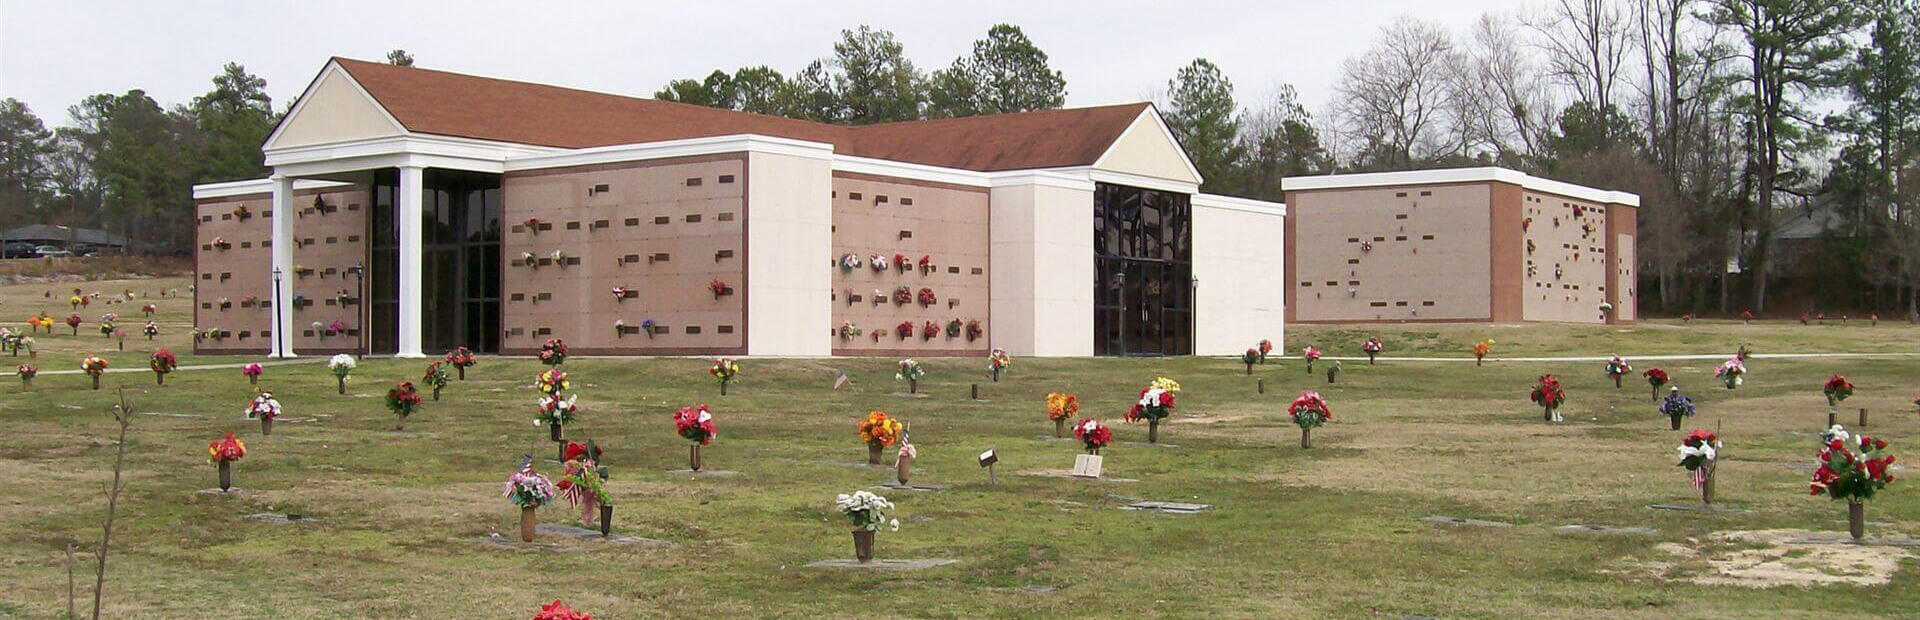 Richmond County Memorial Park Cemetery in Rockingham, NC